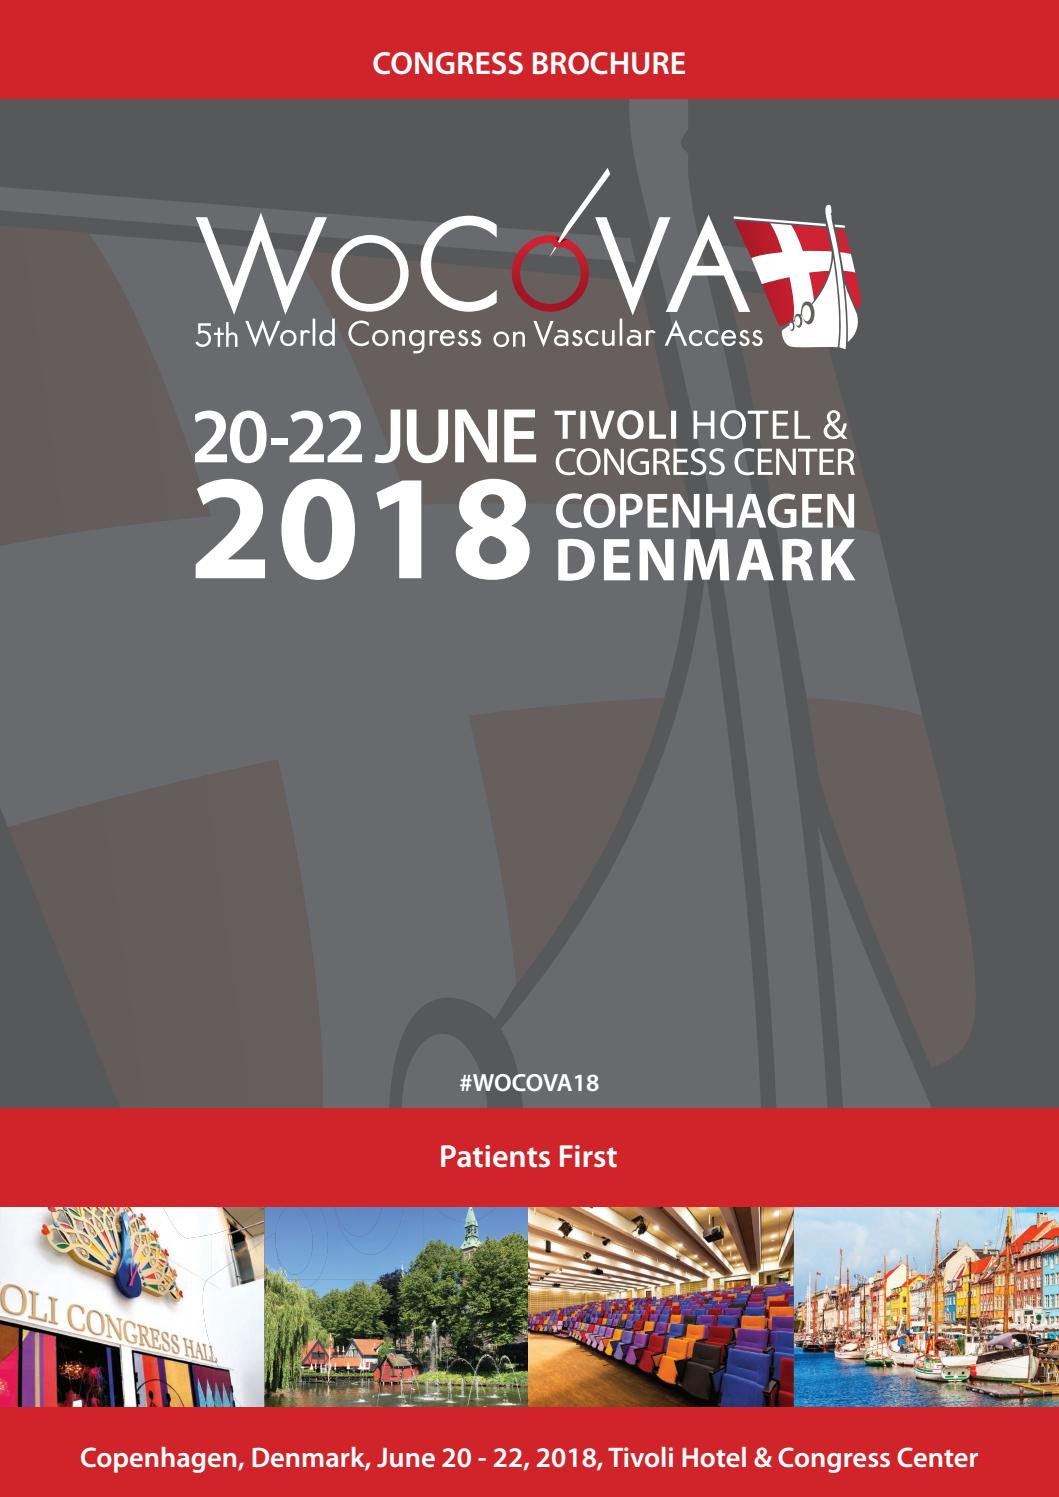 Congress Brochure Wocova 2018 By Wocova Issuu